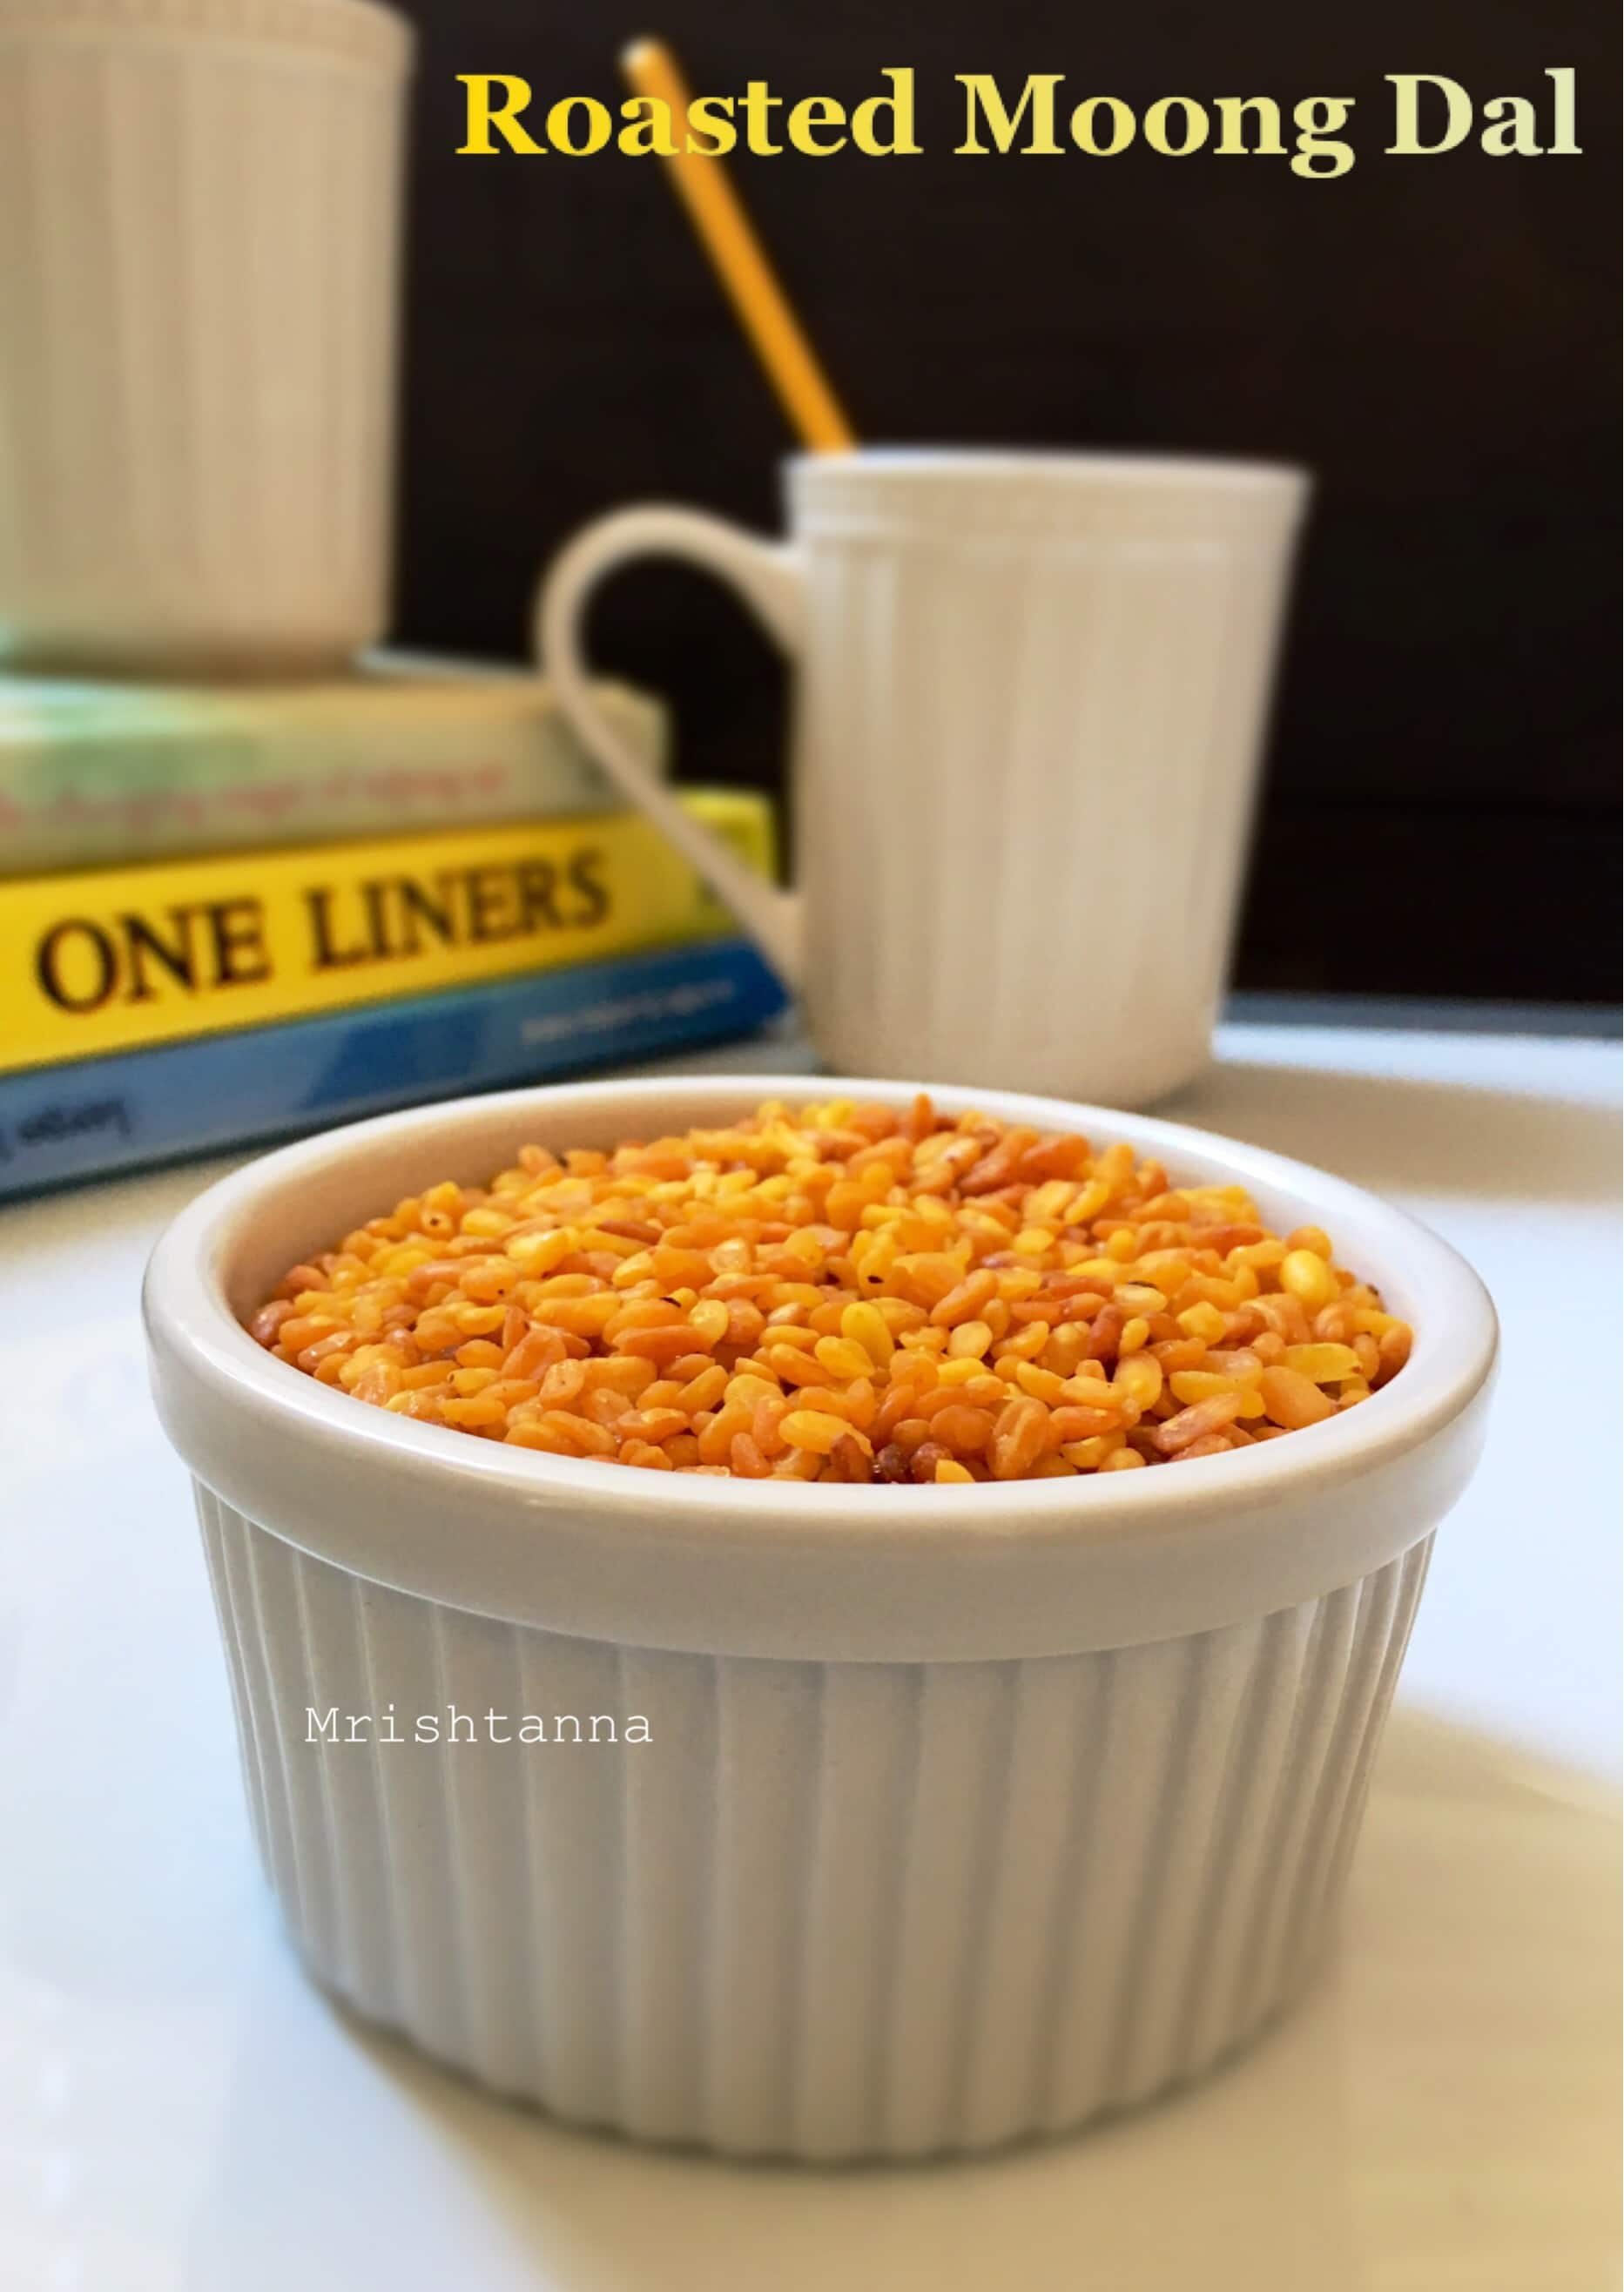 A cup of roasted yellow moong dal on the table along with cup of chai